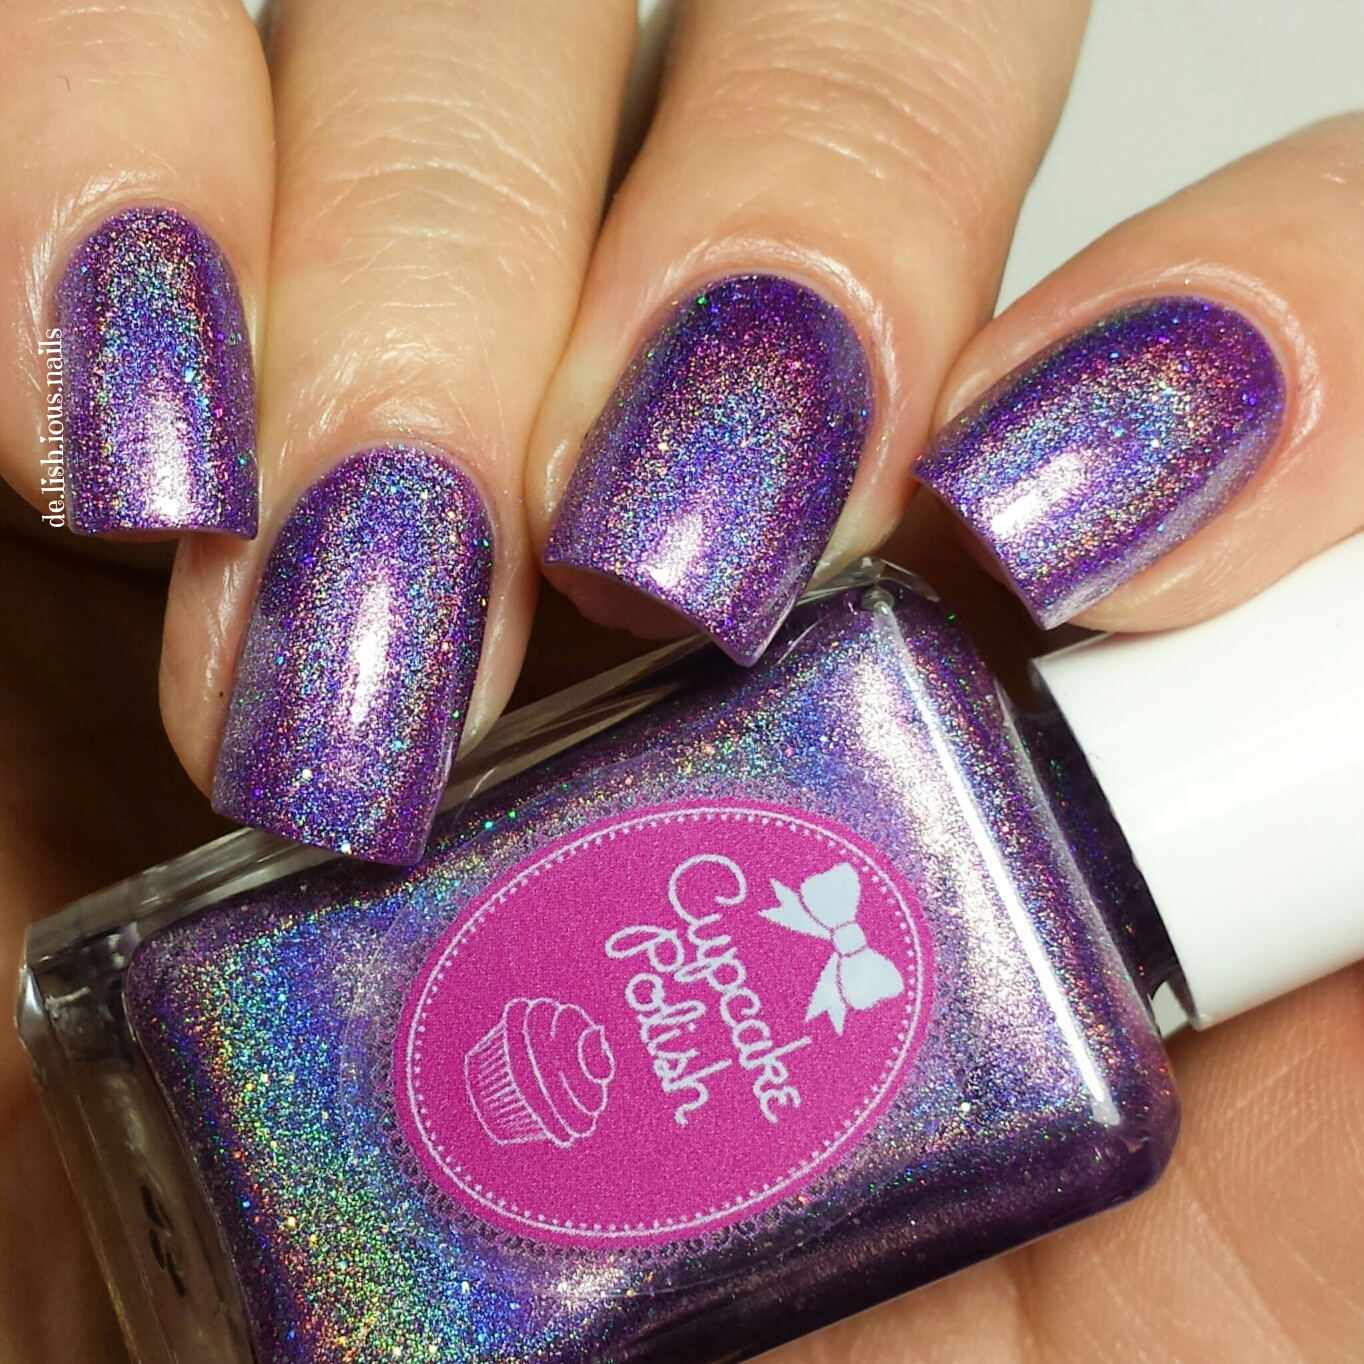 wpid-cupcake-polish-winter-2015-cheer-3.jpg.jpeg